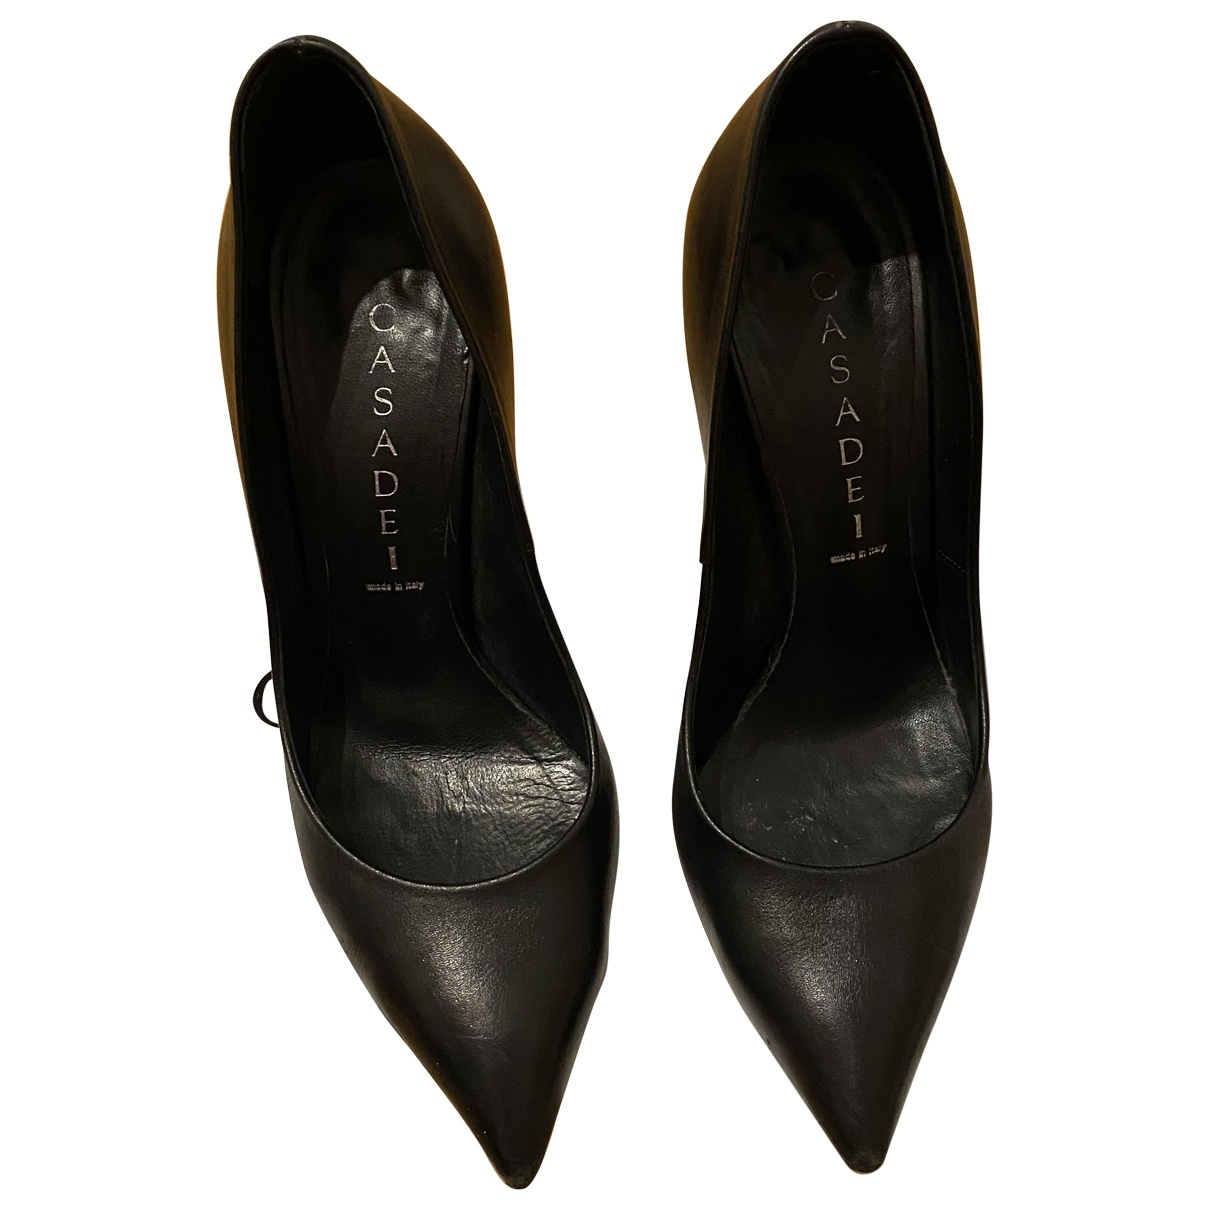 Casadei \N Black Leather Heels for Women 36 EU